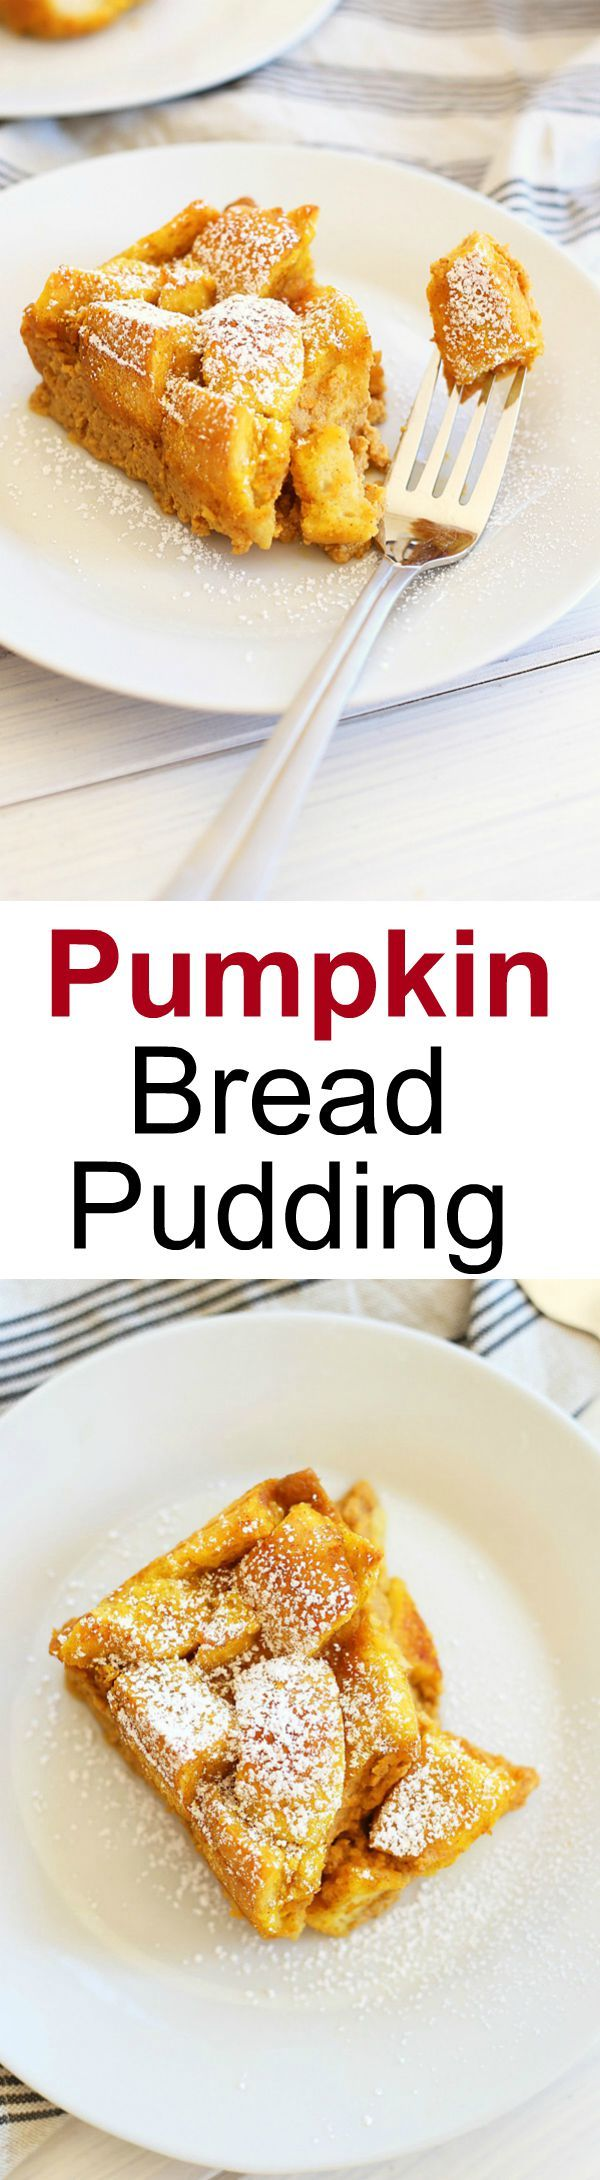 Pumpkin Bread Pudding – turn leftover bread into this amazing and seasonal dessert loaded with pumpkin spice and egg custard, so good! | rasamalaysia.com